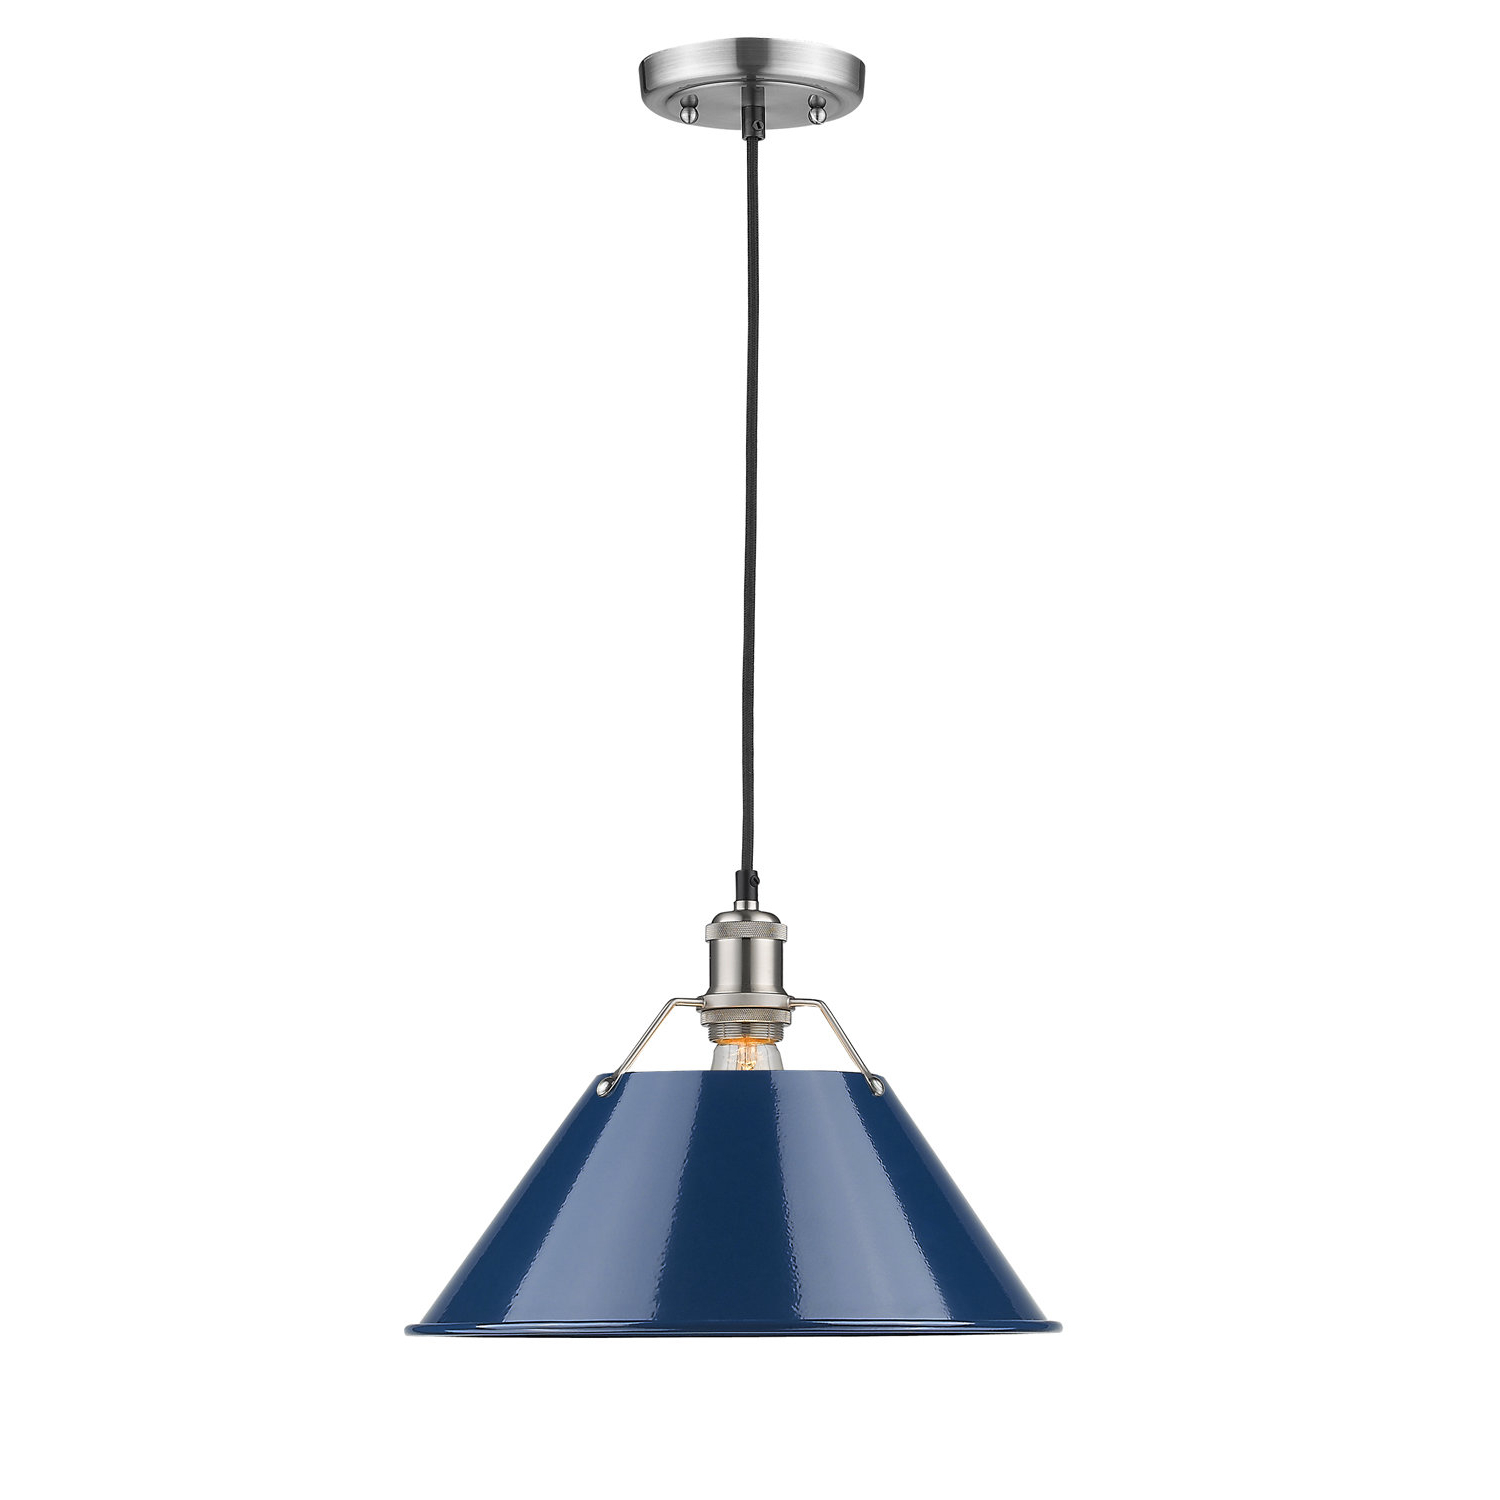 Weatherford 1 Light Single Cone Pendant For Most Popular Nadeau 1 Light Single Cone Pendants (View 23 of 25)